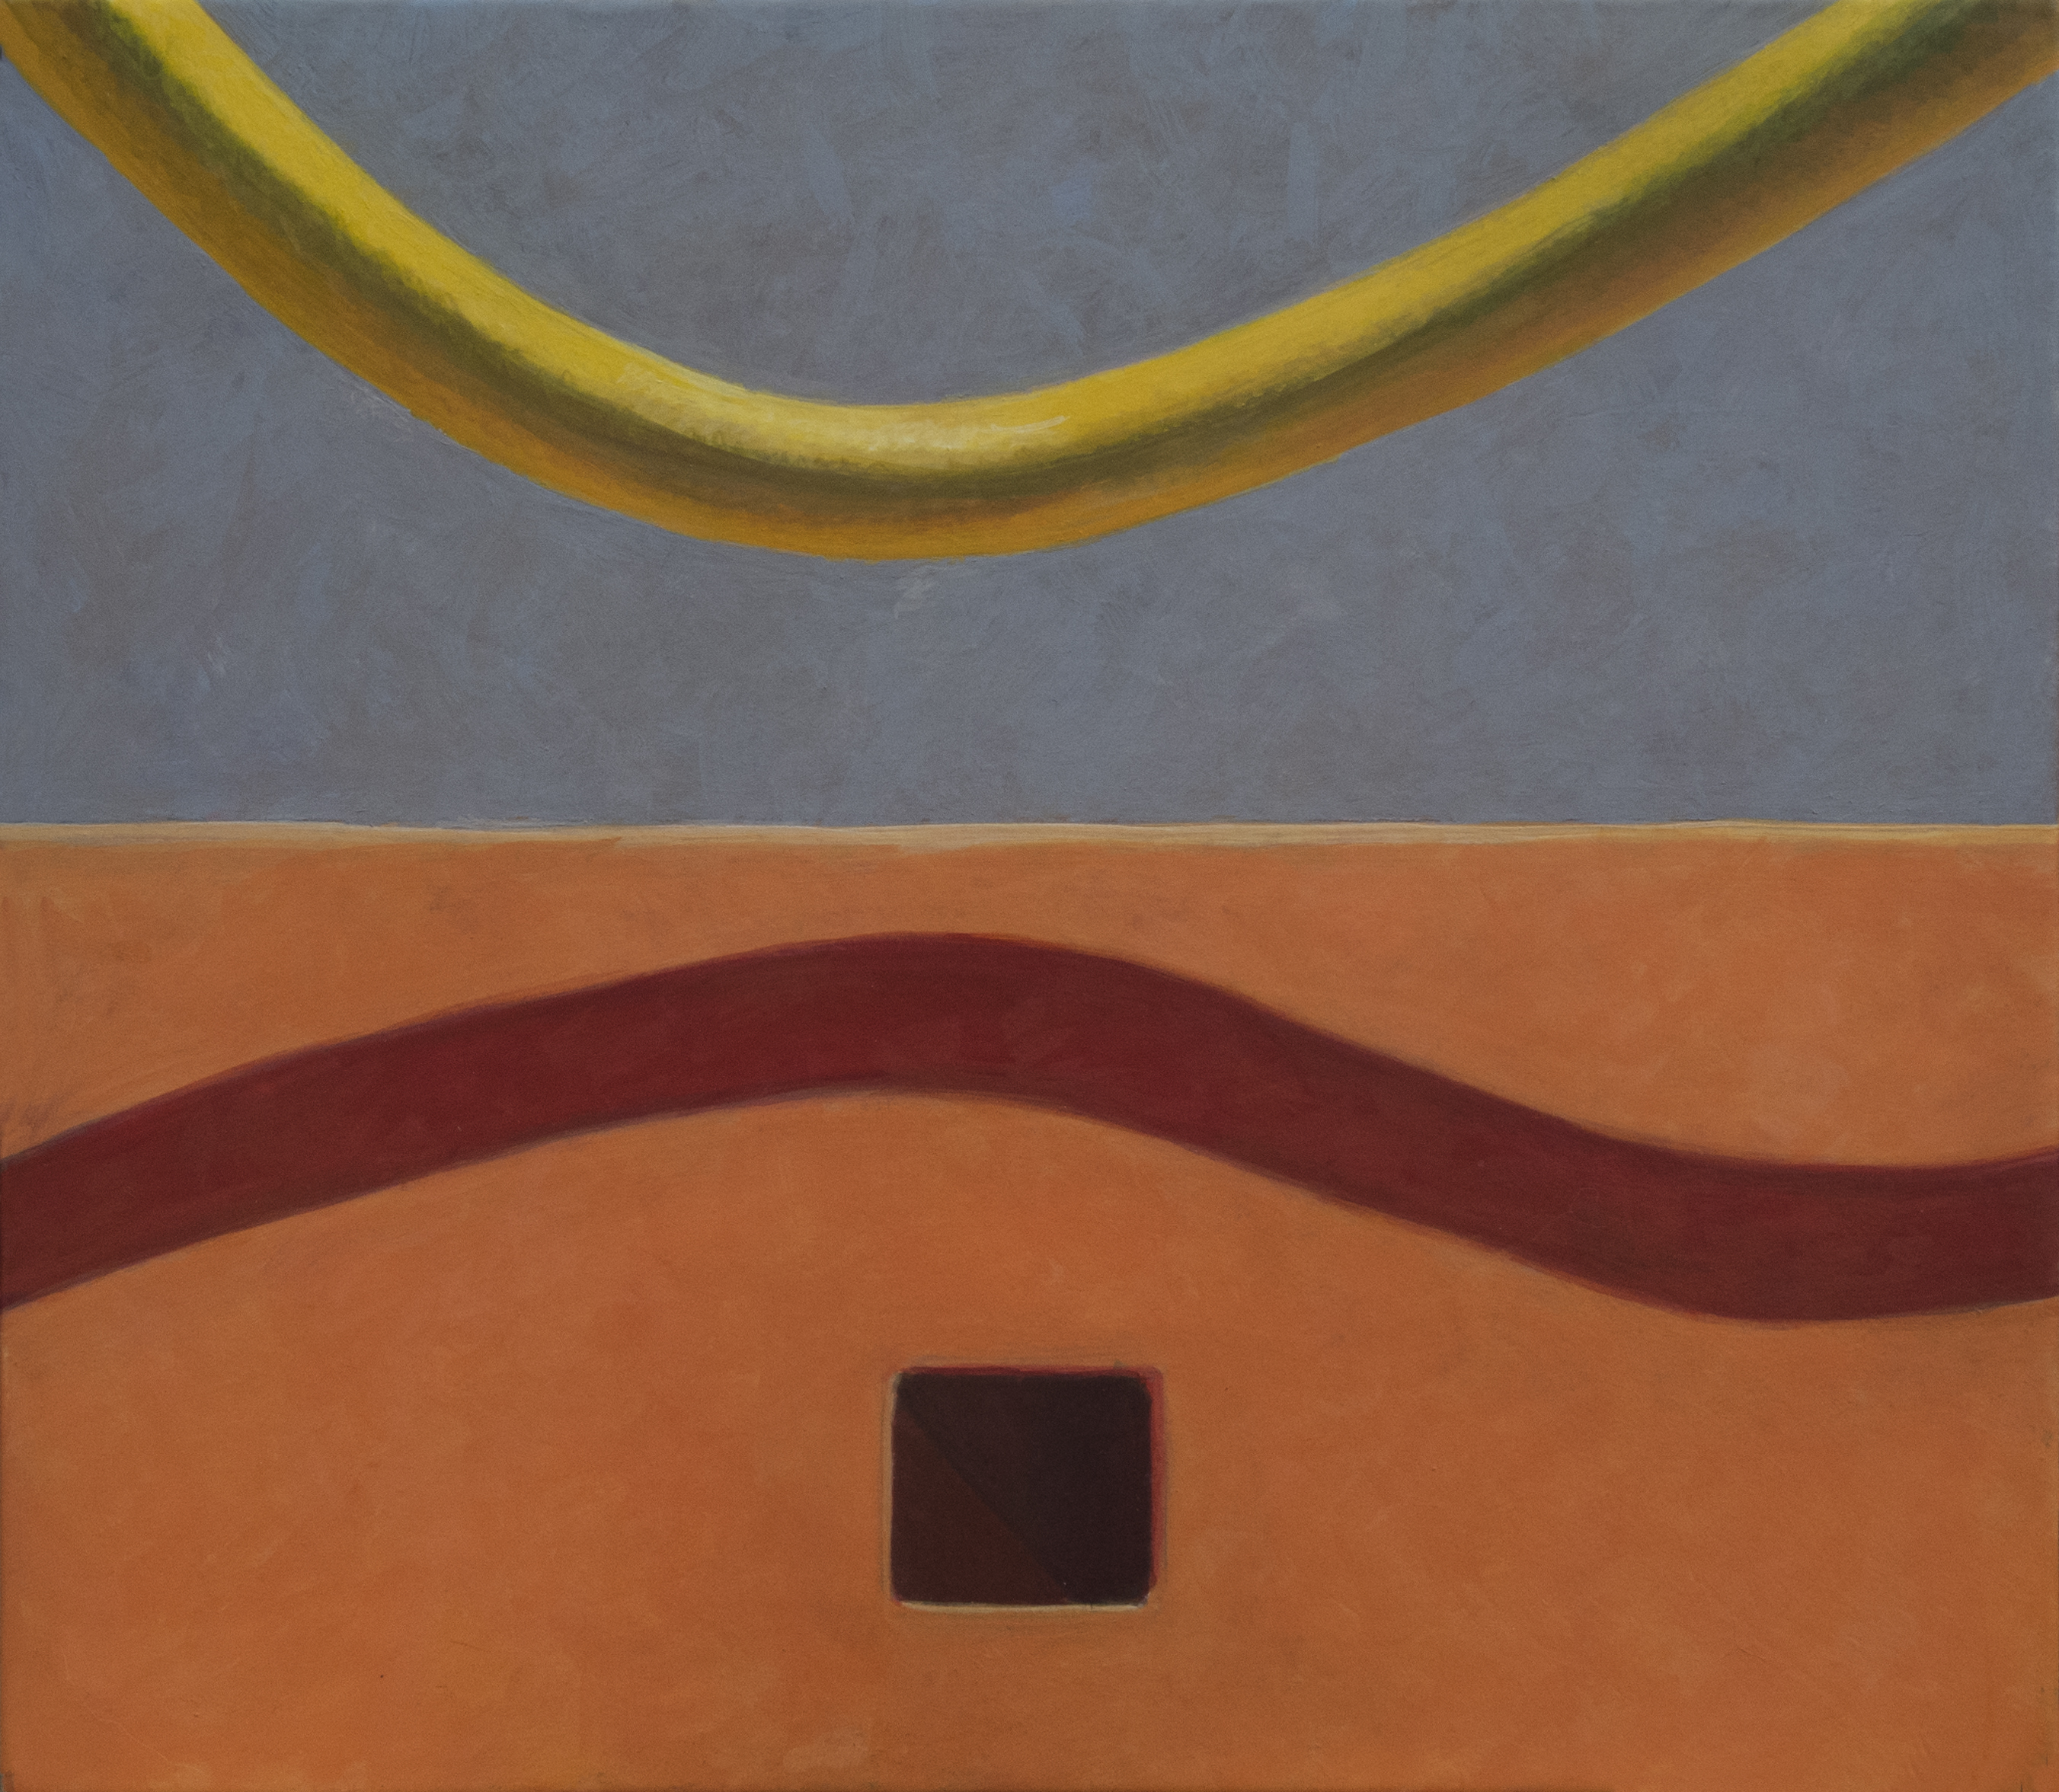 Altoon Sultan: Curves and Square, 2013, egg tempera on parchment, 6 1/2 x 7 1/2